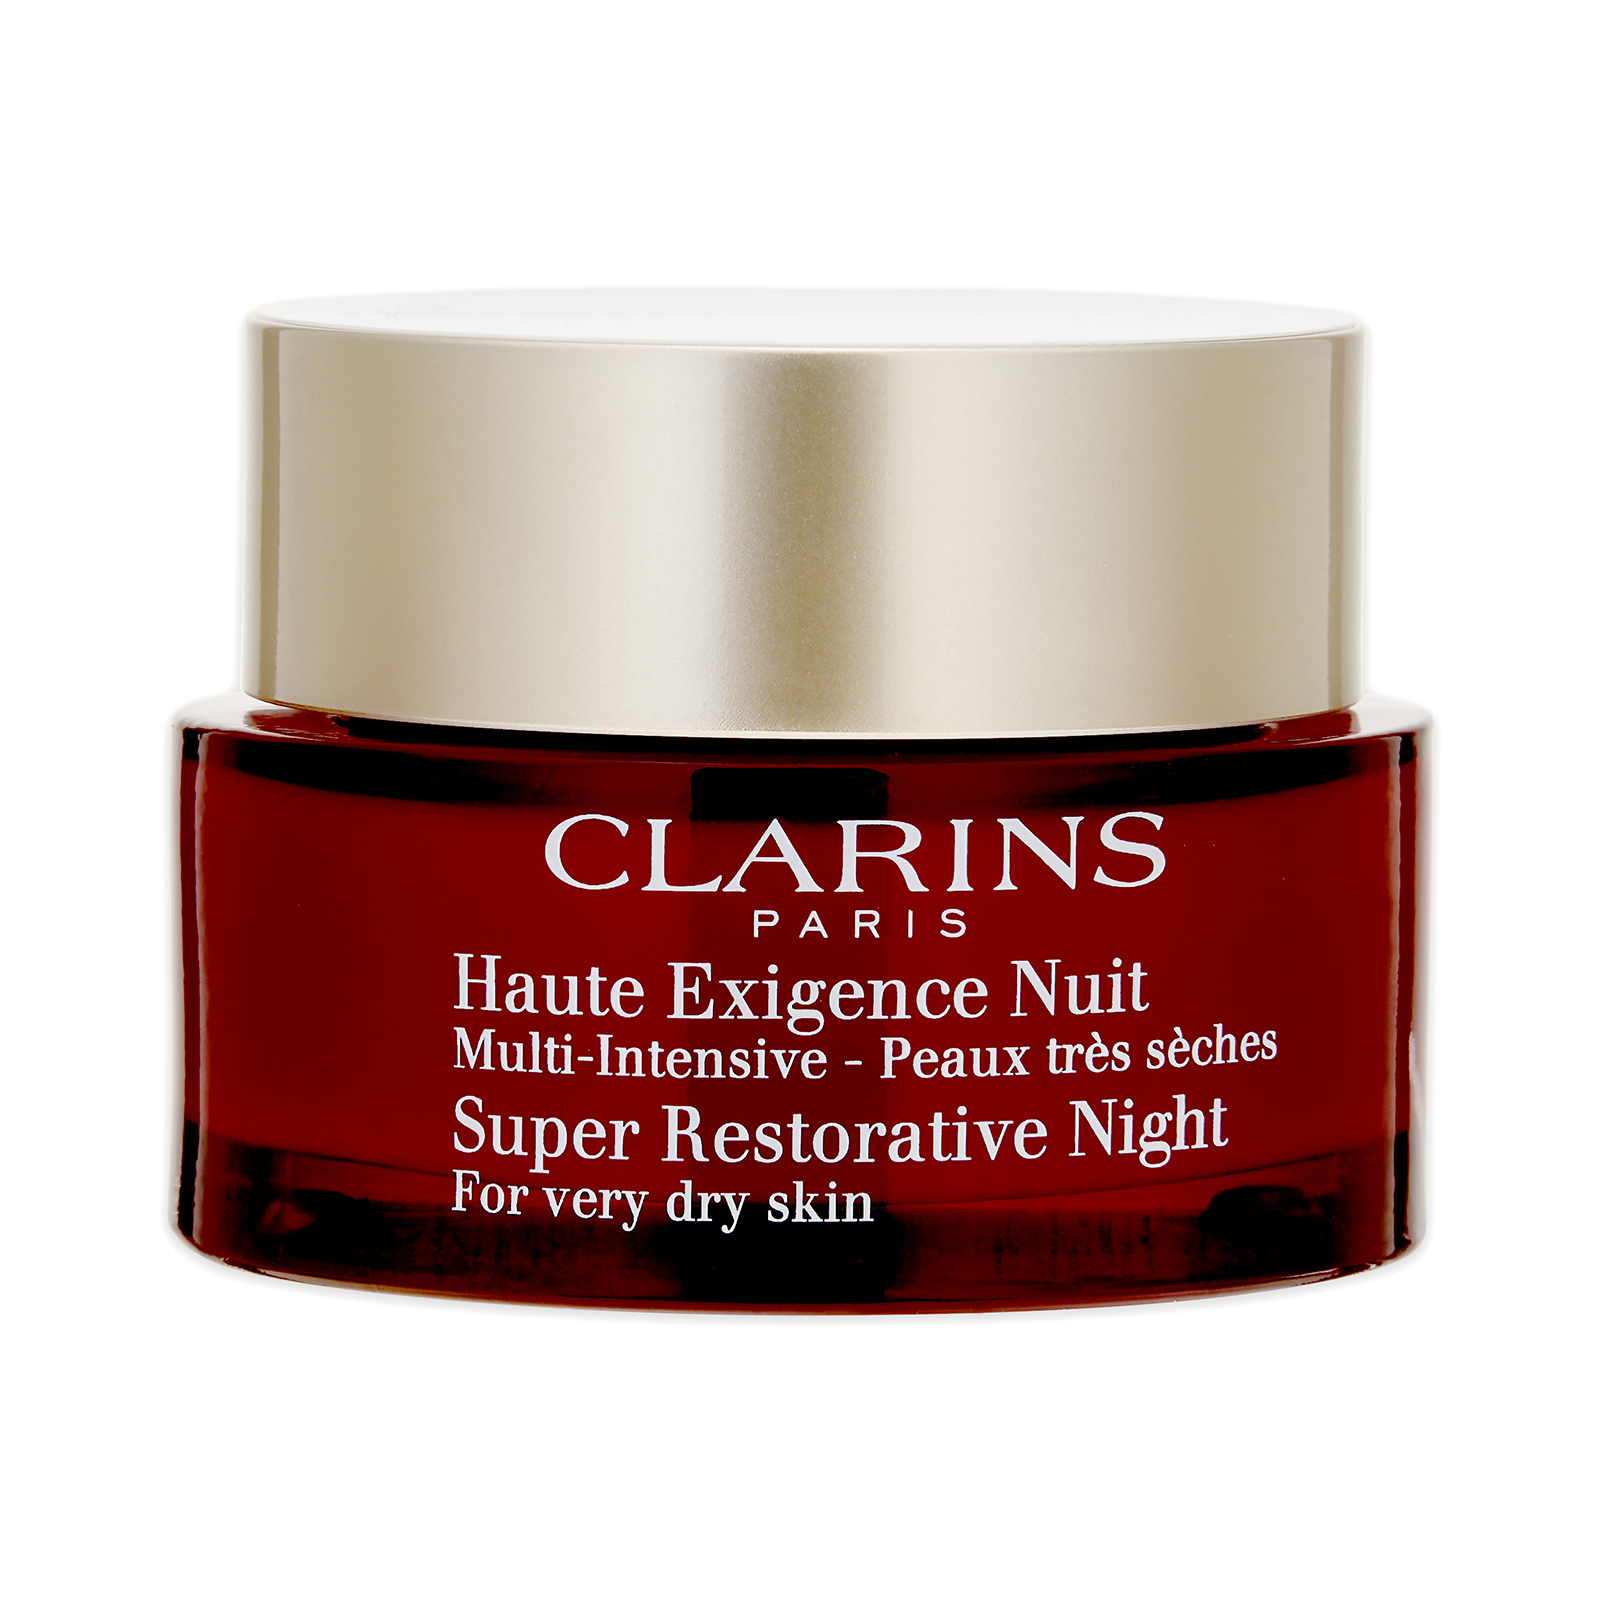 Clarins Super Restorative  Night Age Spot Correcting Replenishing Cream (For Very Dry Skin) 1.6oz, 50ml from Cosme-De.com